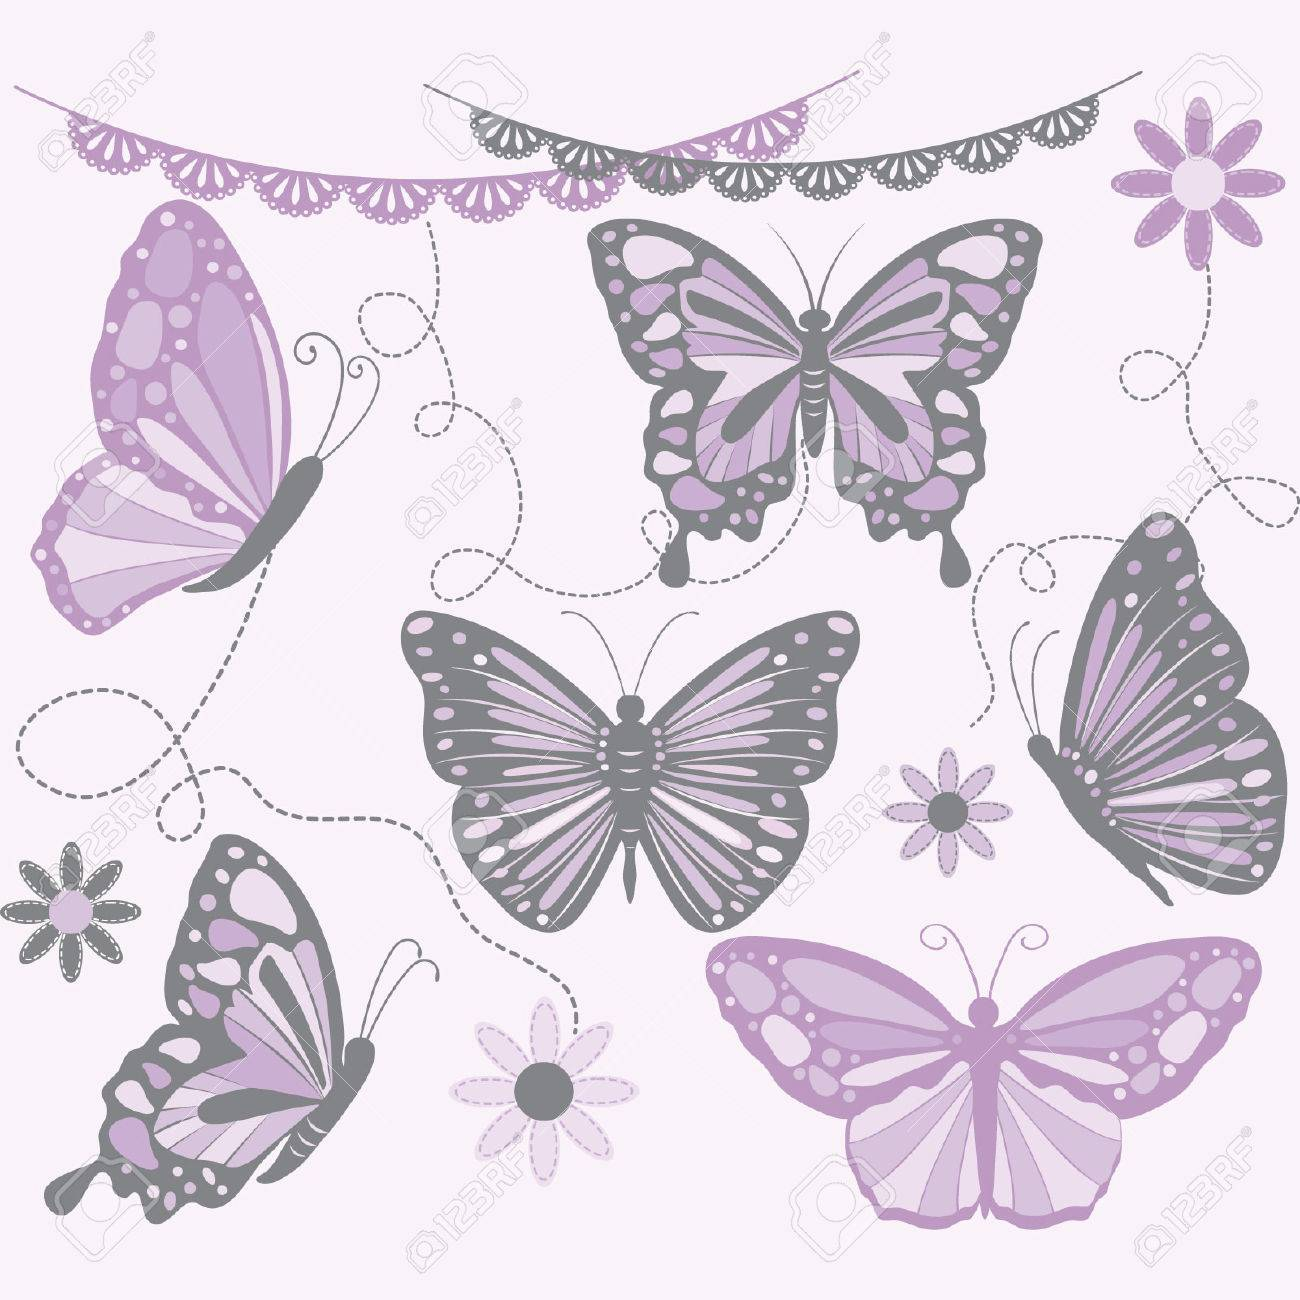 hight resolution of purple and grey butterfly butterfly silhouette flower lace border stock vector